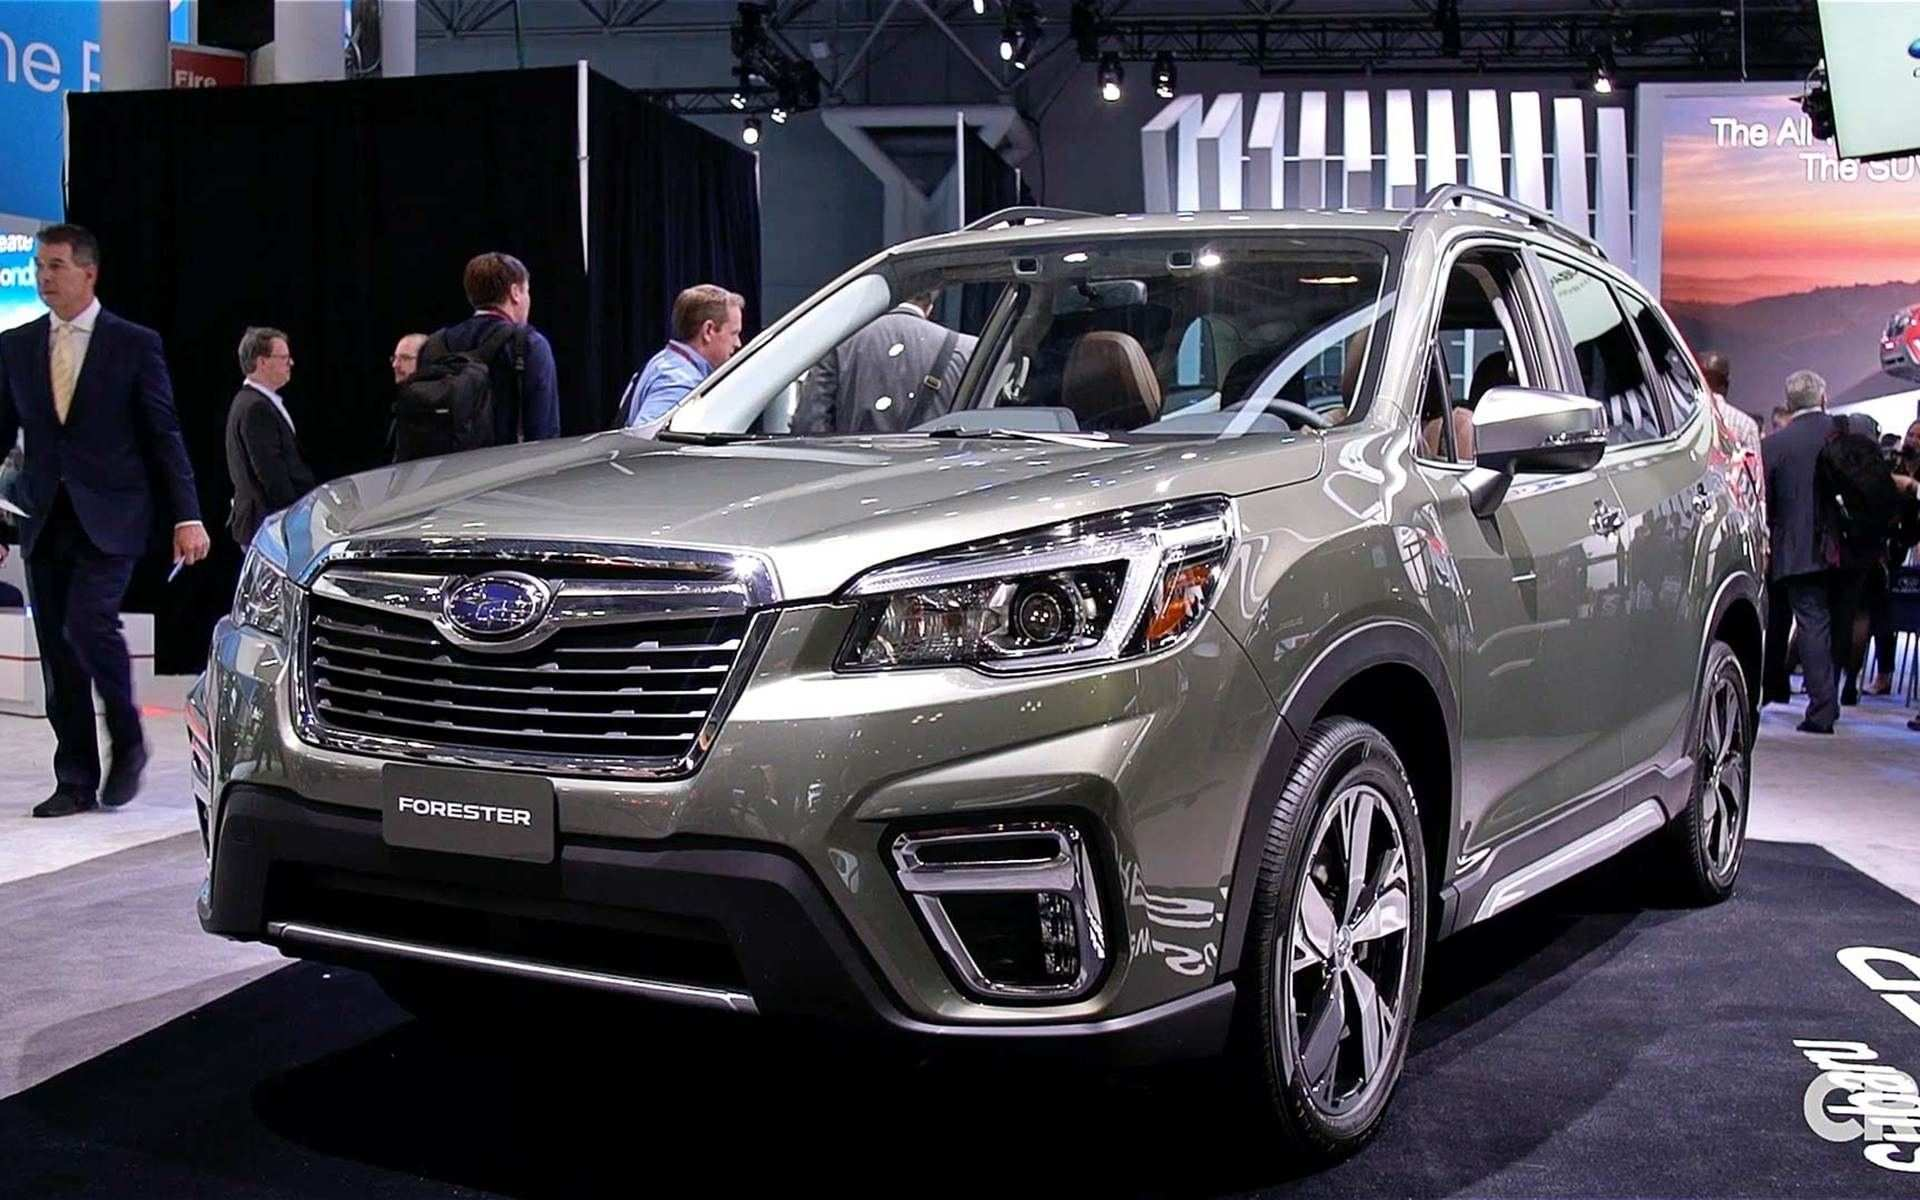 87 Best Review 2019 Subaru Exterior Colors Release Date with 2019 Subaru Exterior Colors